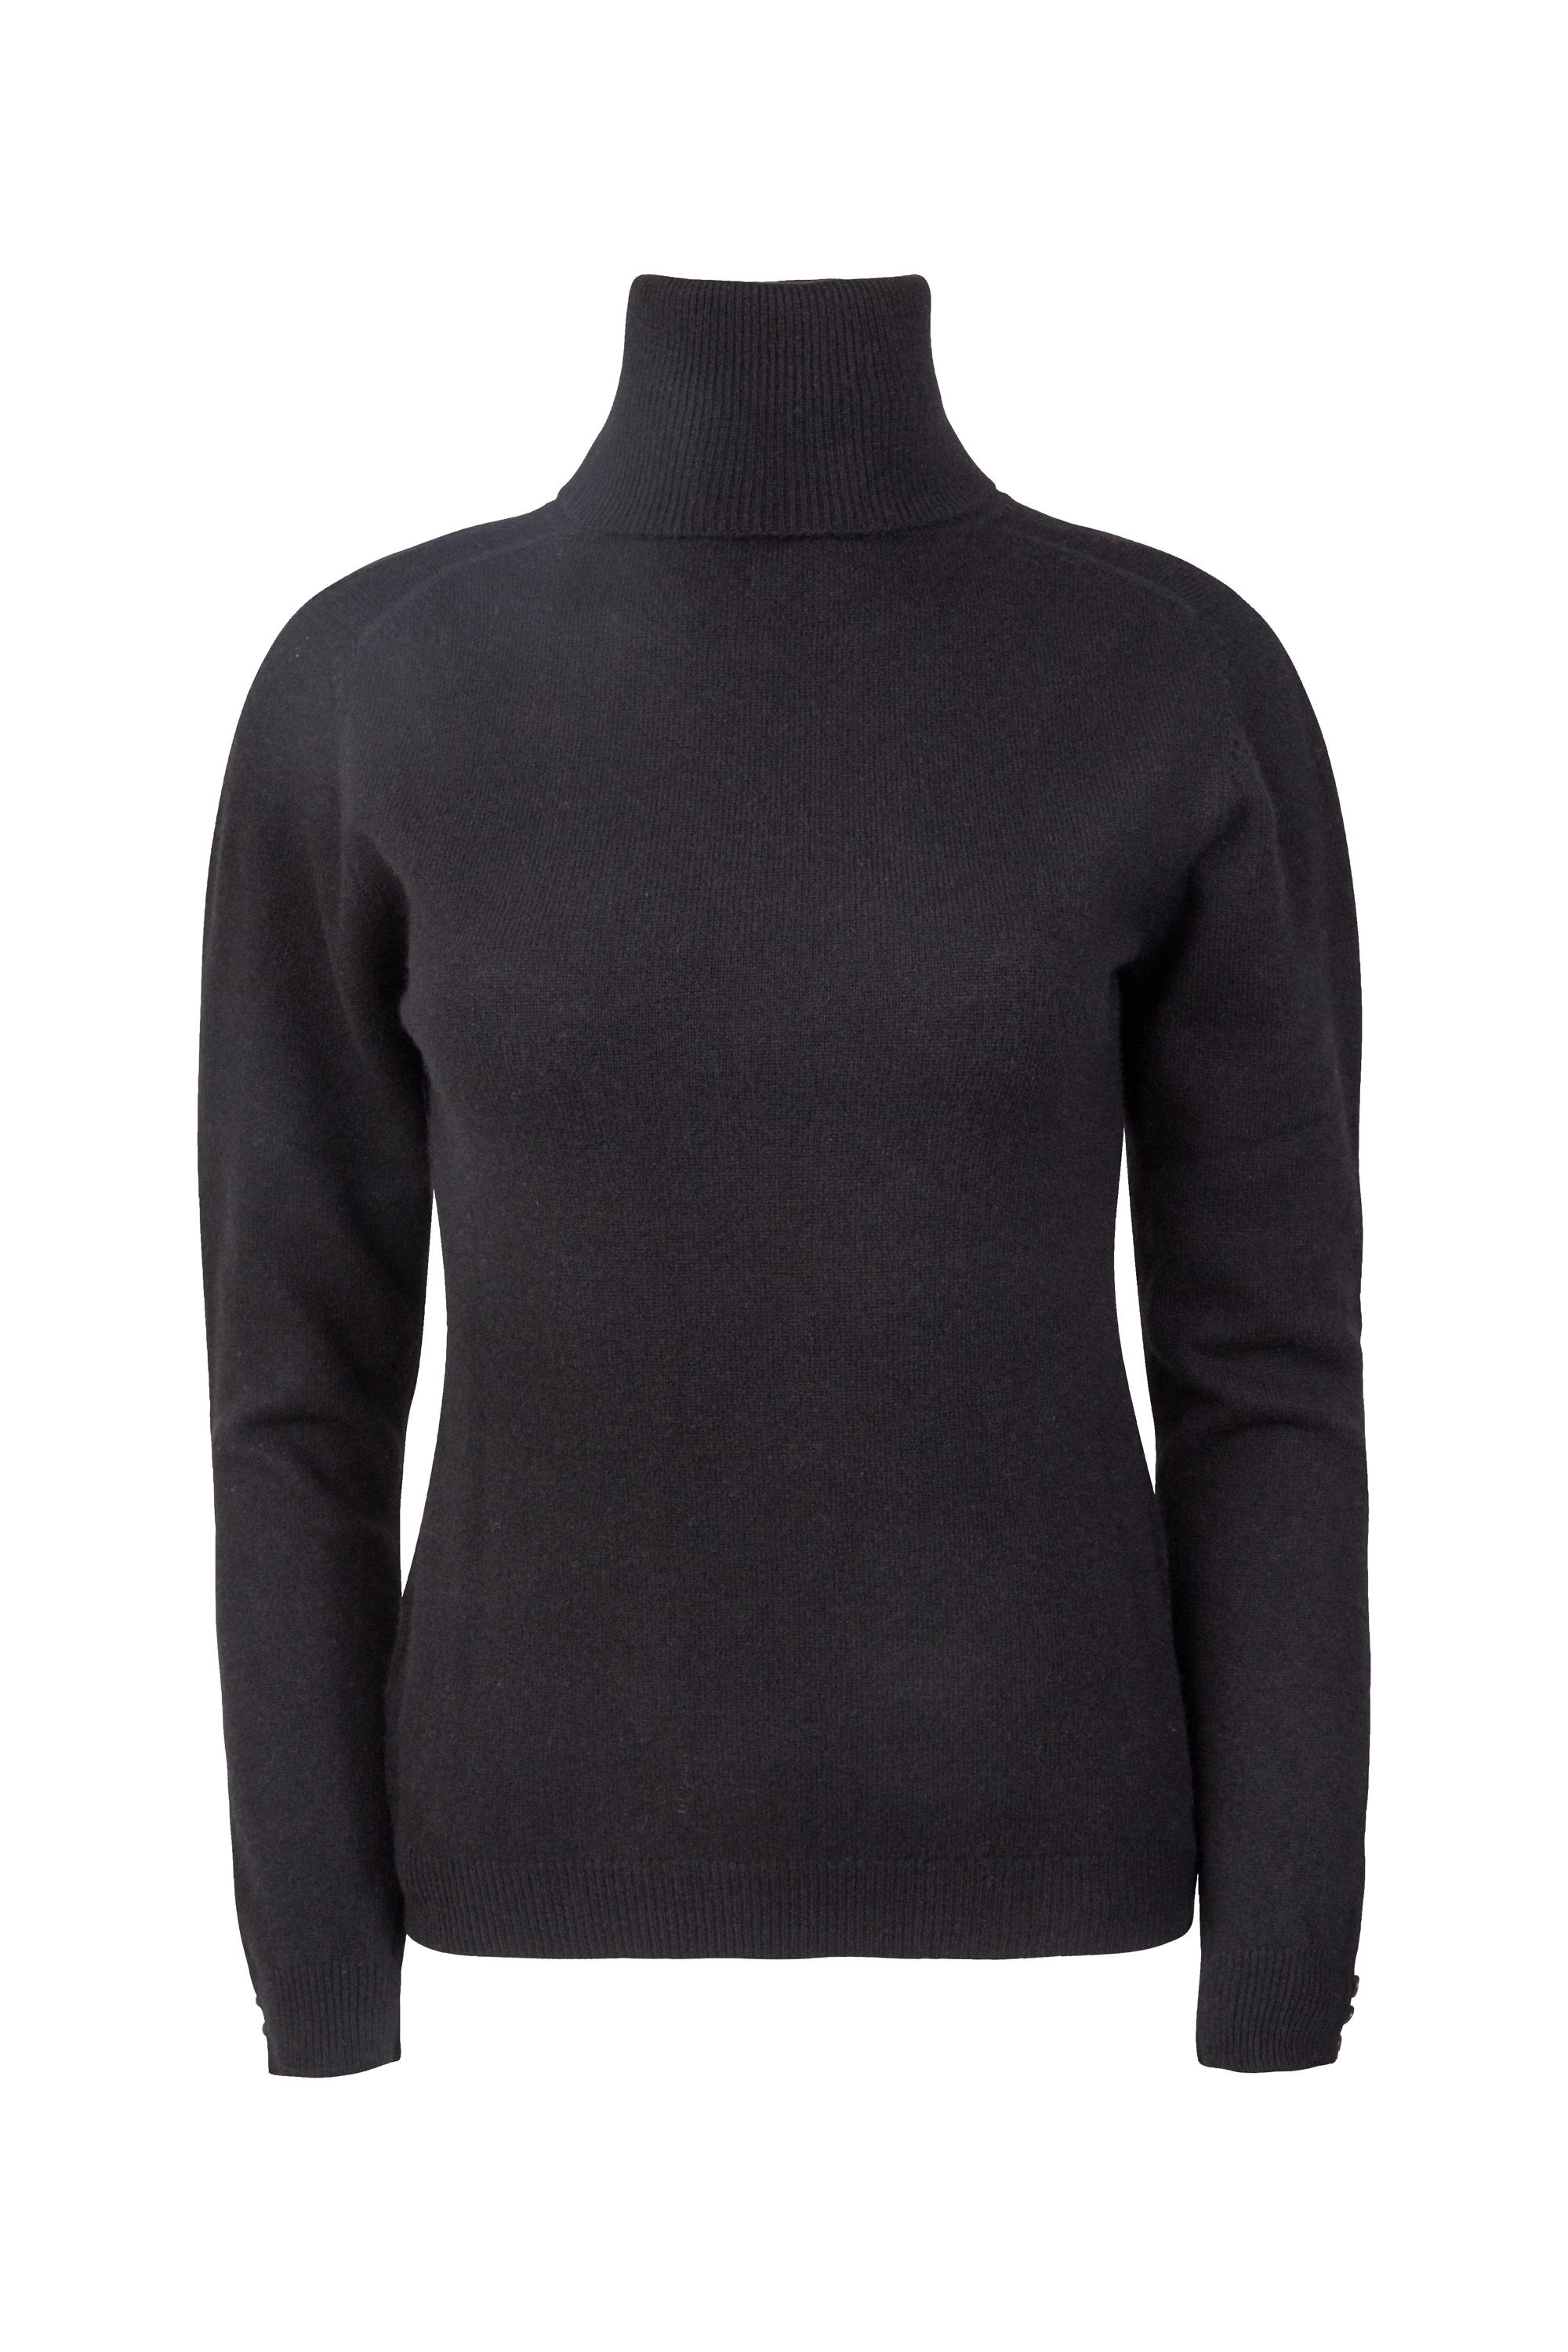 Cashmere Brit Brodie Polo, Black